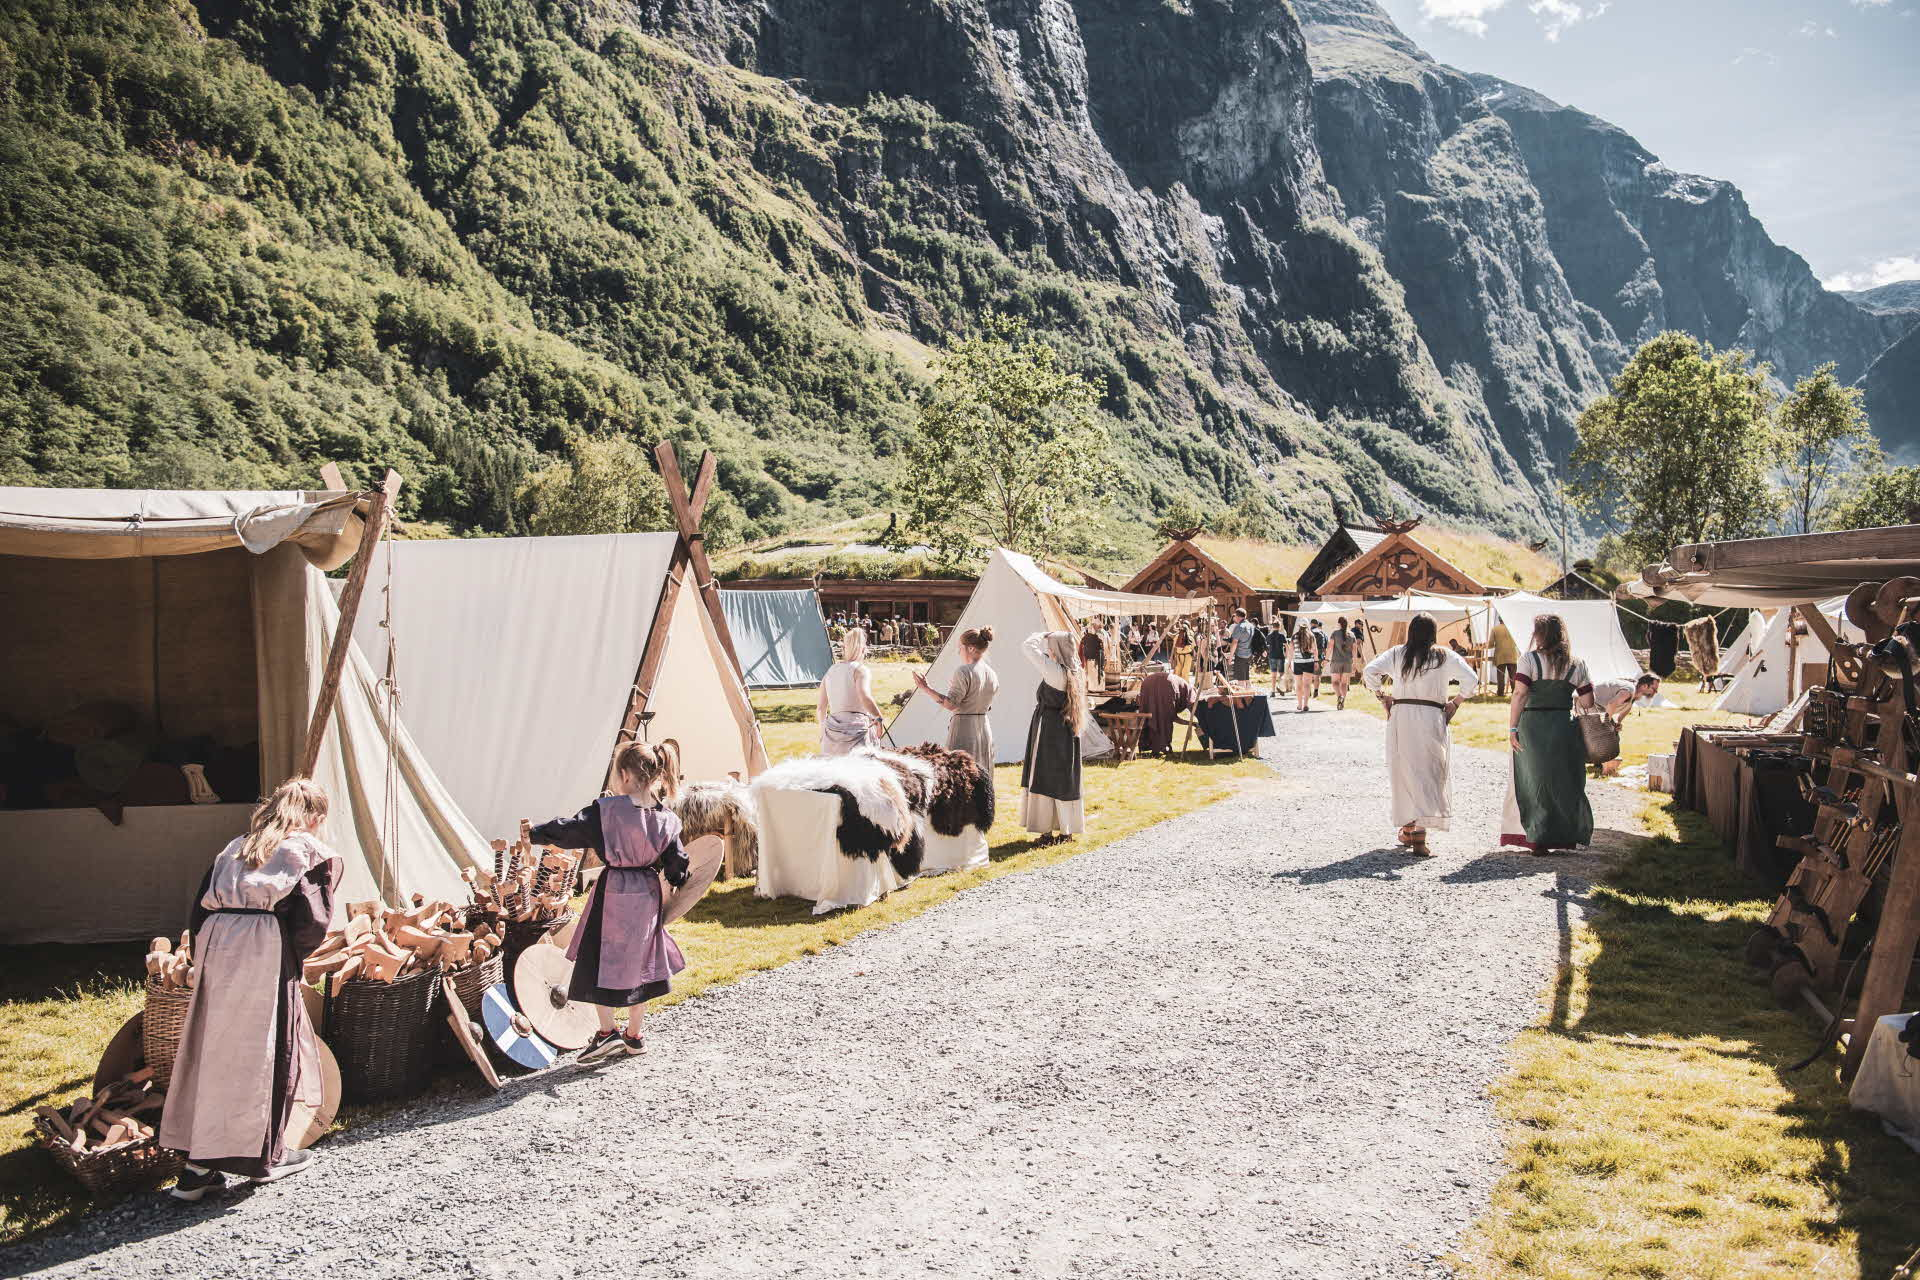 Children and adults in Viking clothes standing next to authentic tents in Gudvangen